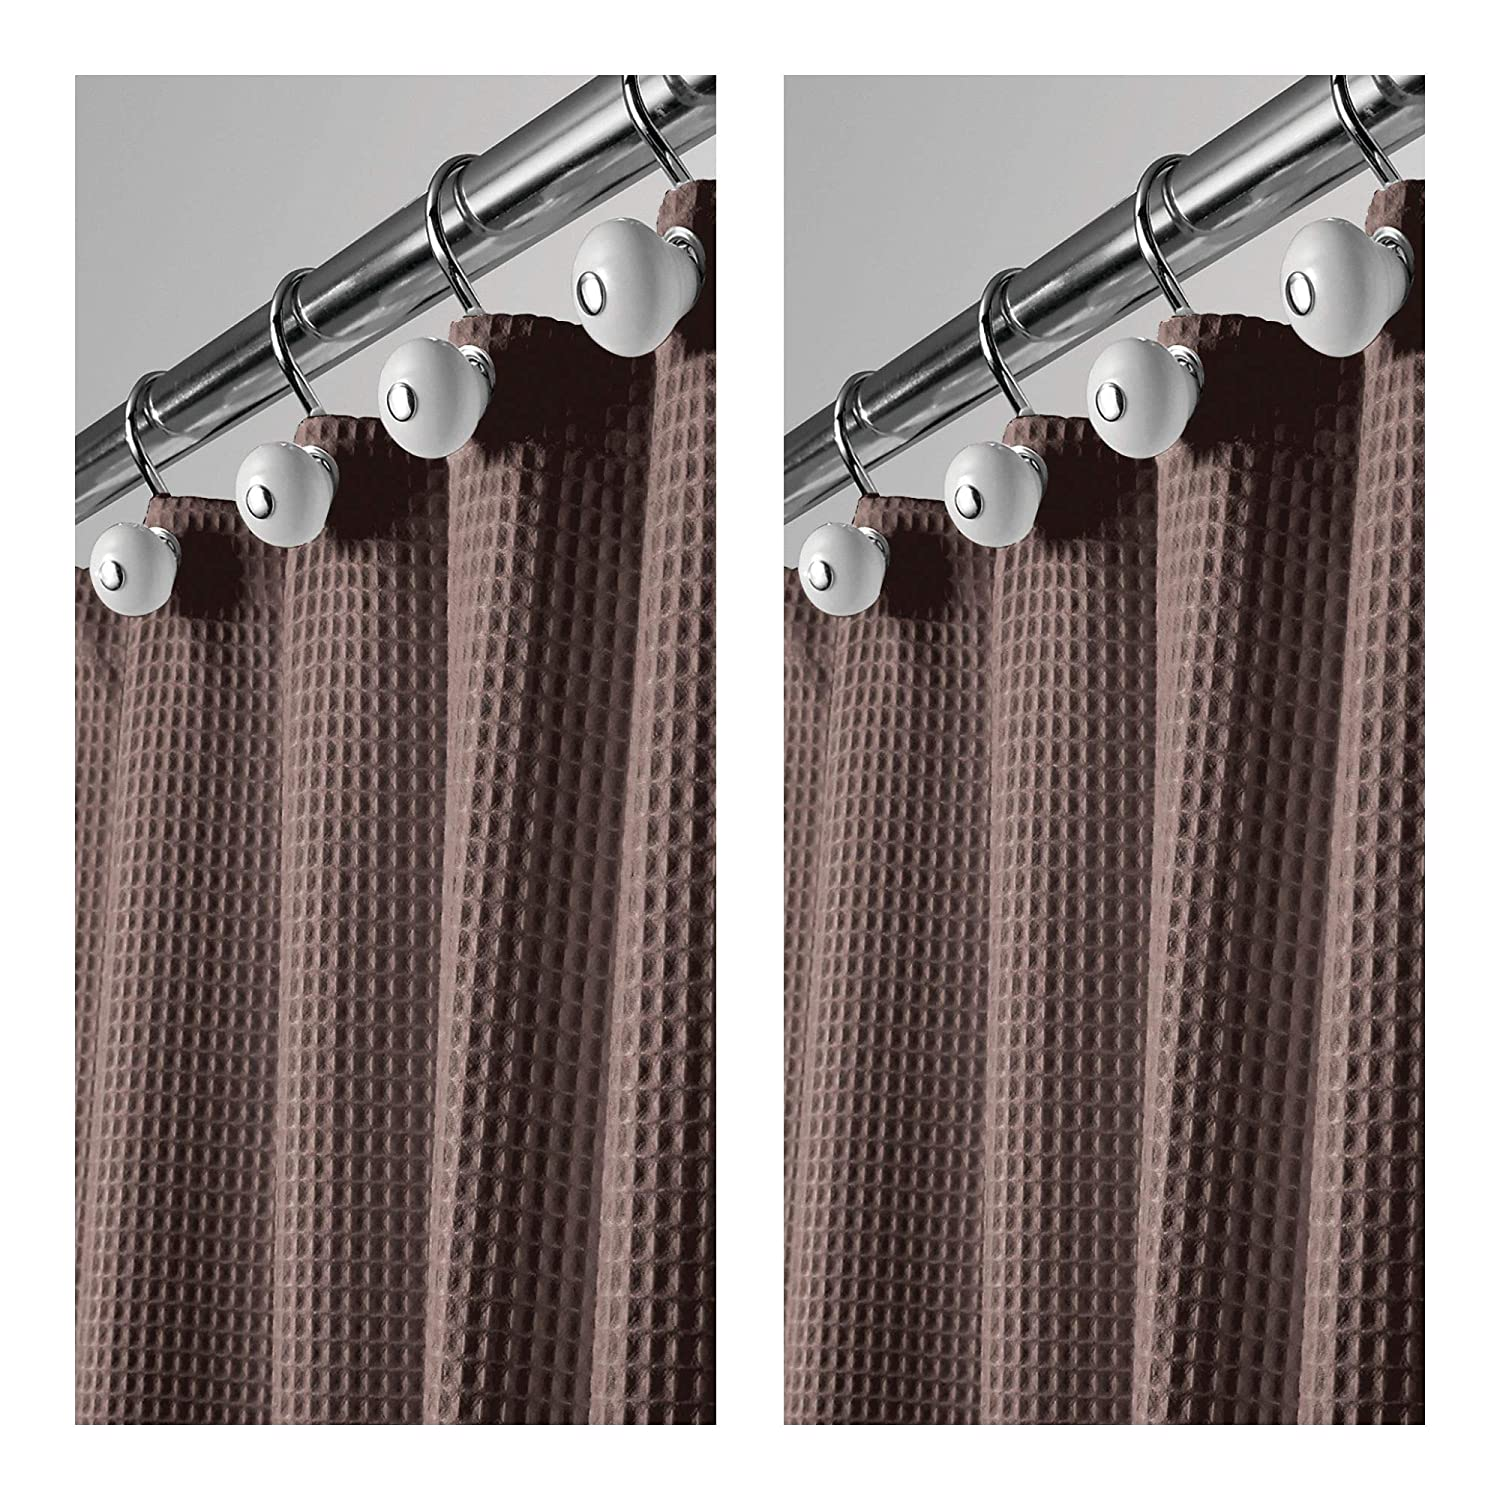 mDesign Hotel Quality Polyester/Cotton Blend Fabric Shower Curtain Waffle Weave Rustproof Metal Grommets Bathroom Showers Bathtubs - 72